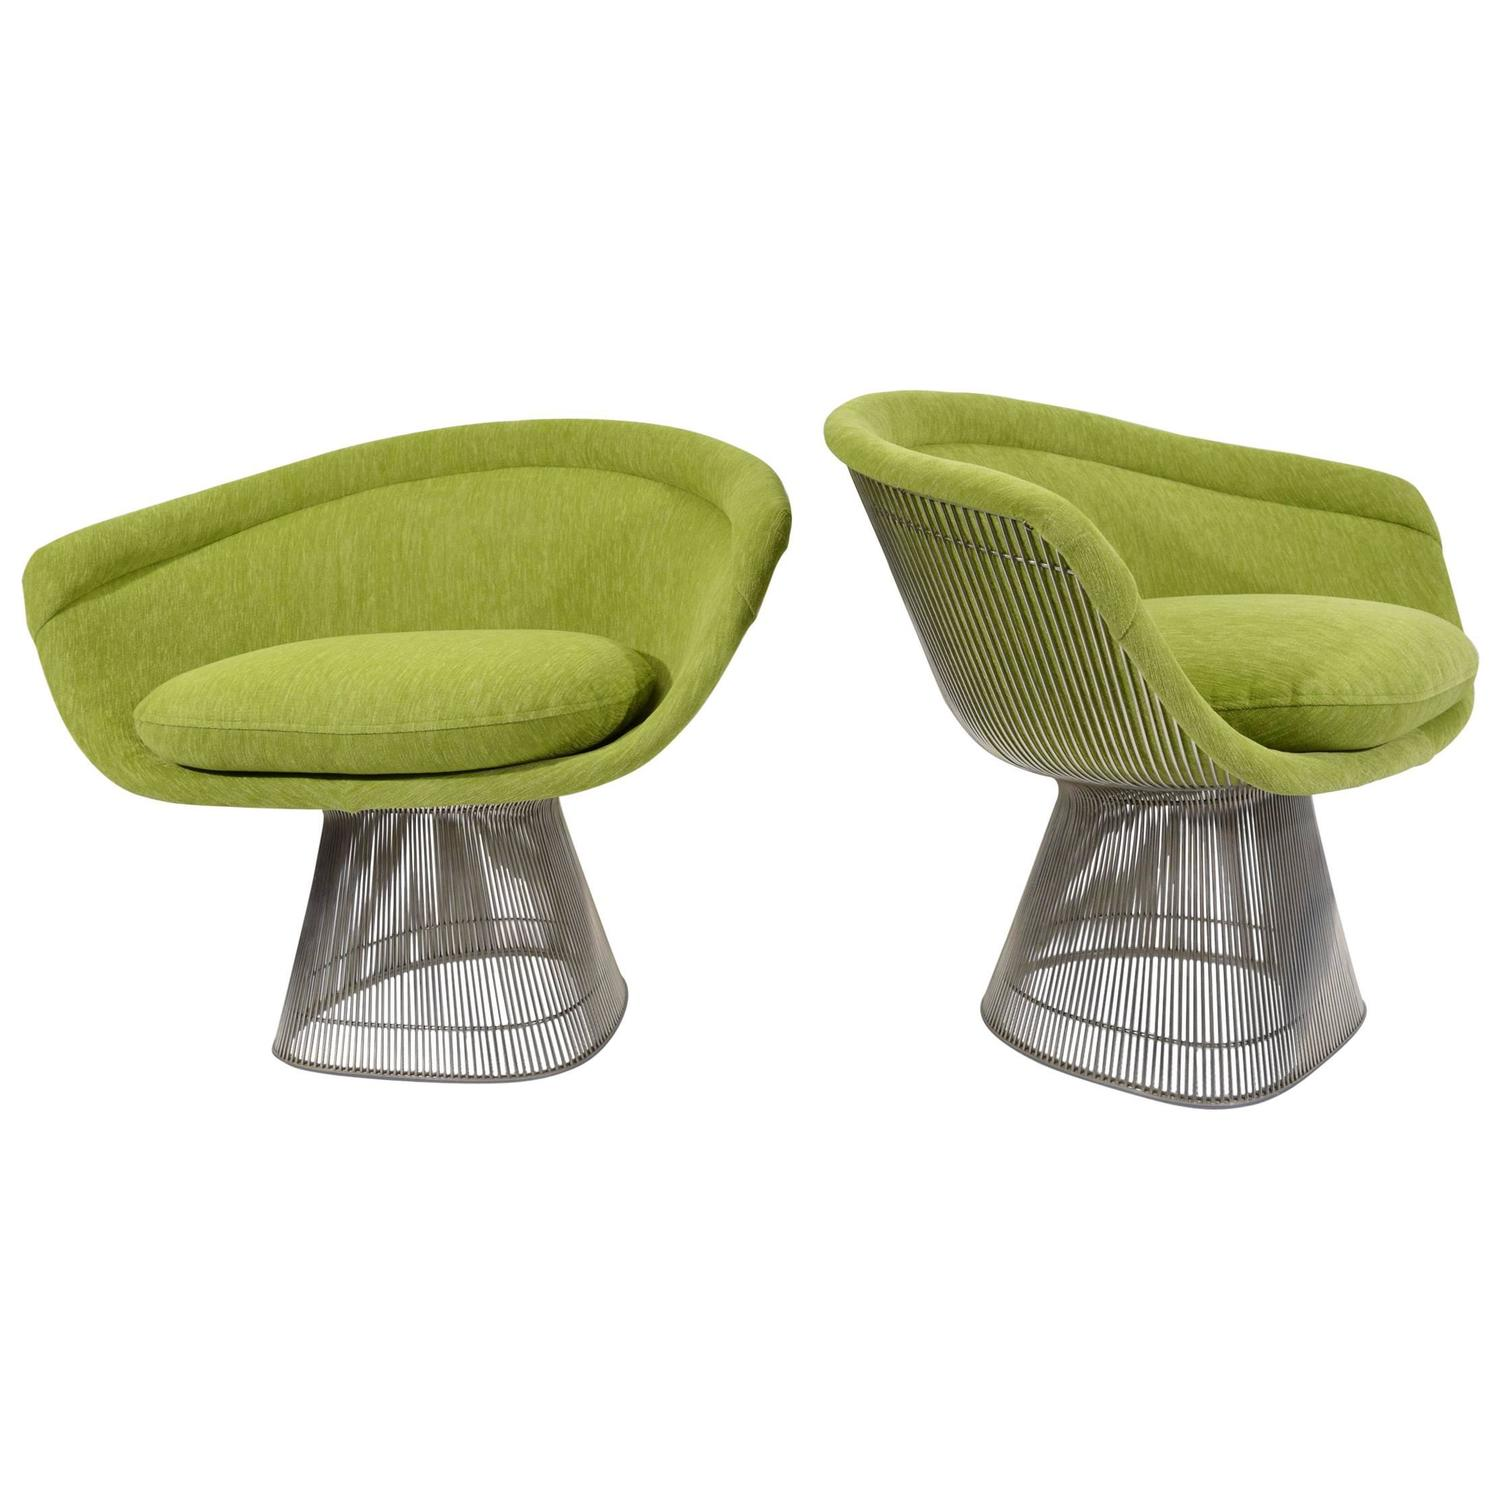 Warren Platner Furniture: Chairs, Dining Tables, & More - 93 For ...